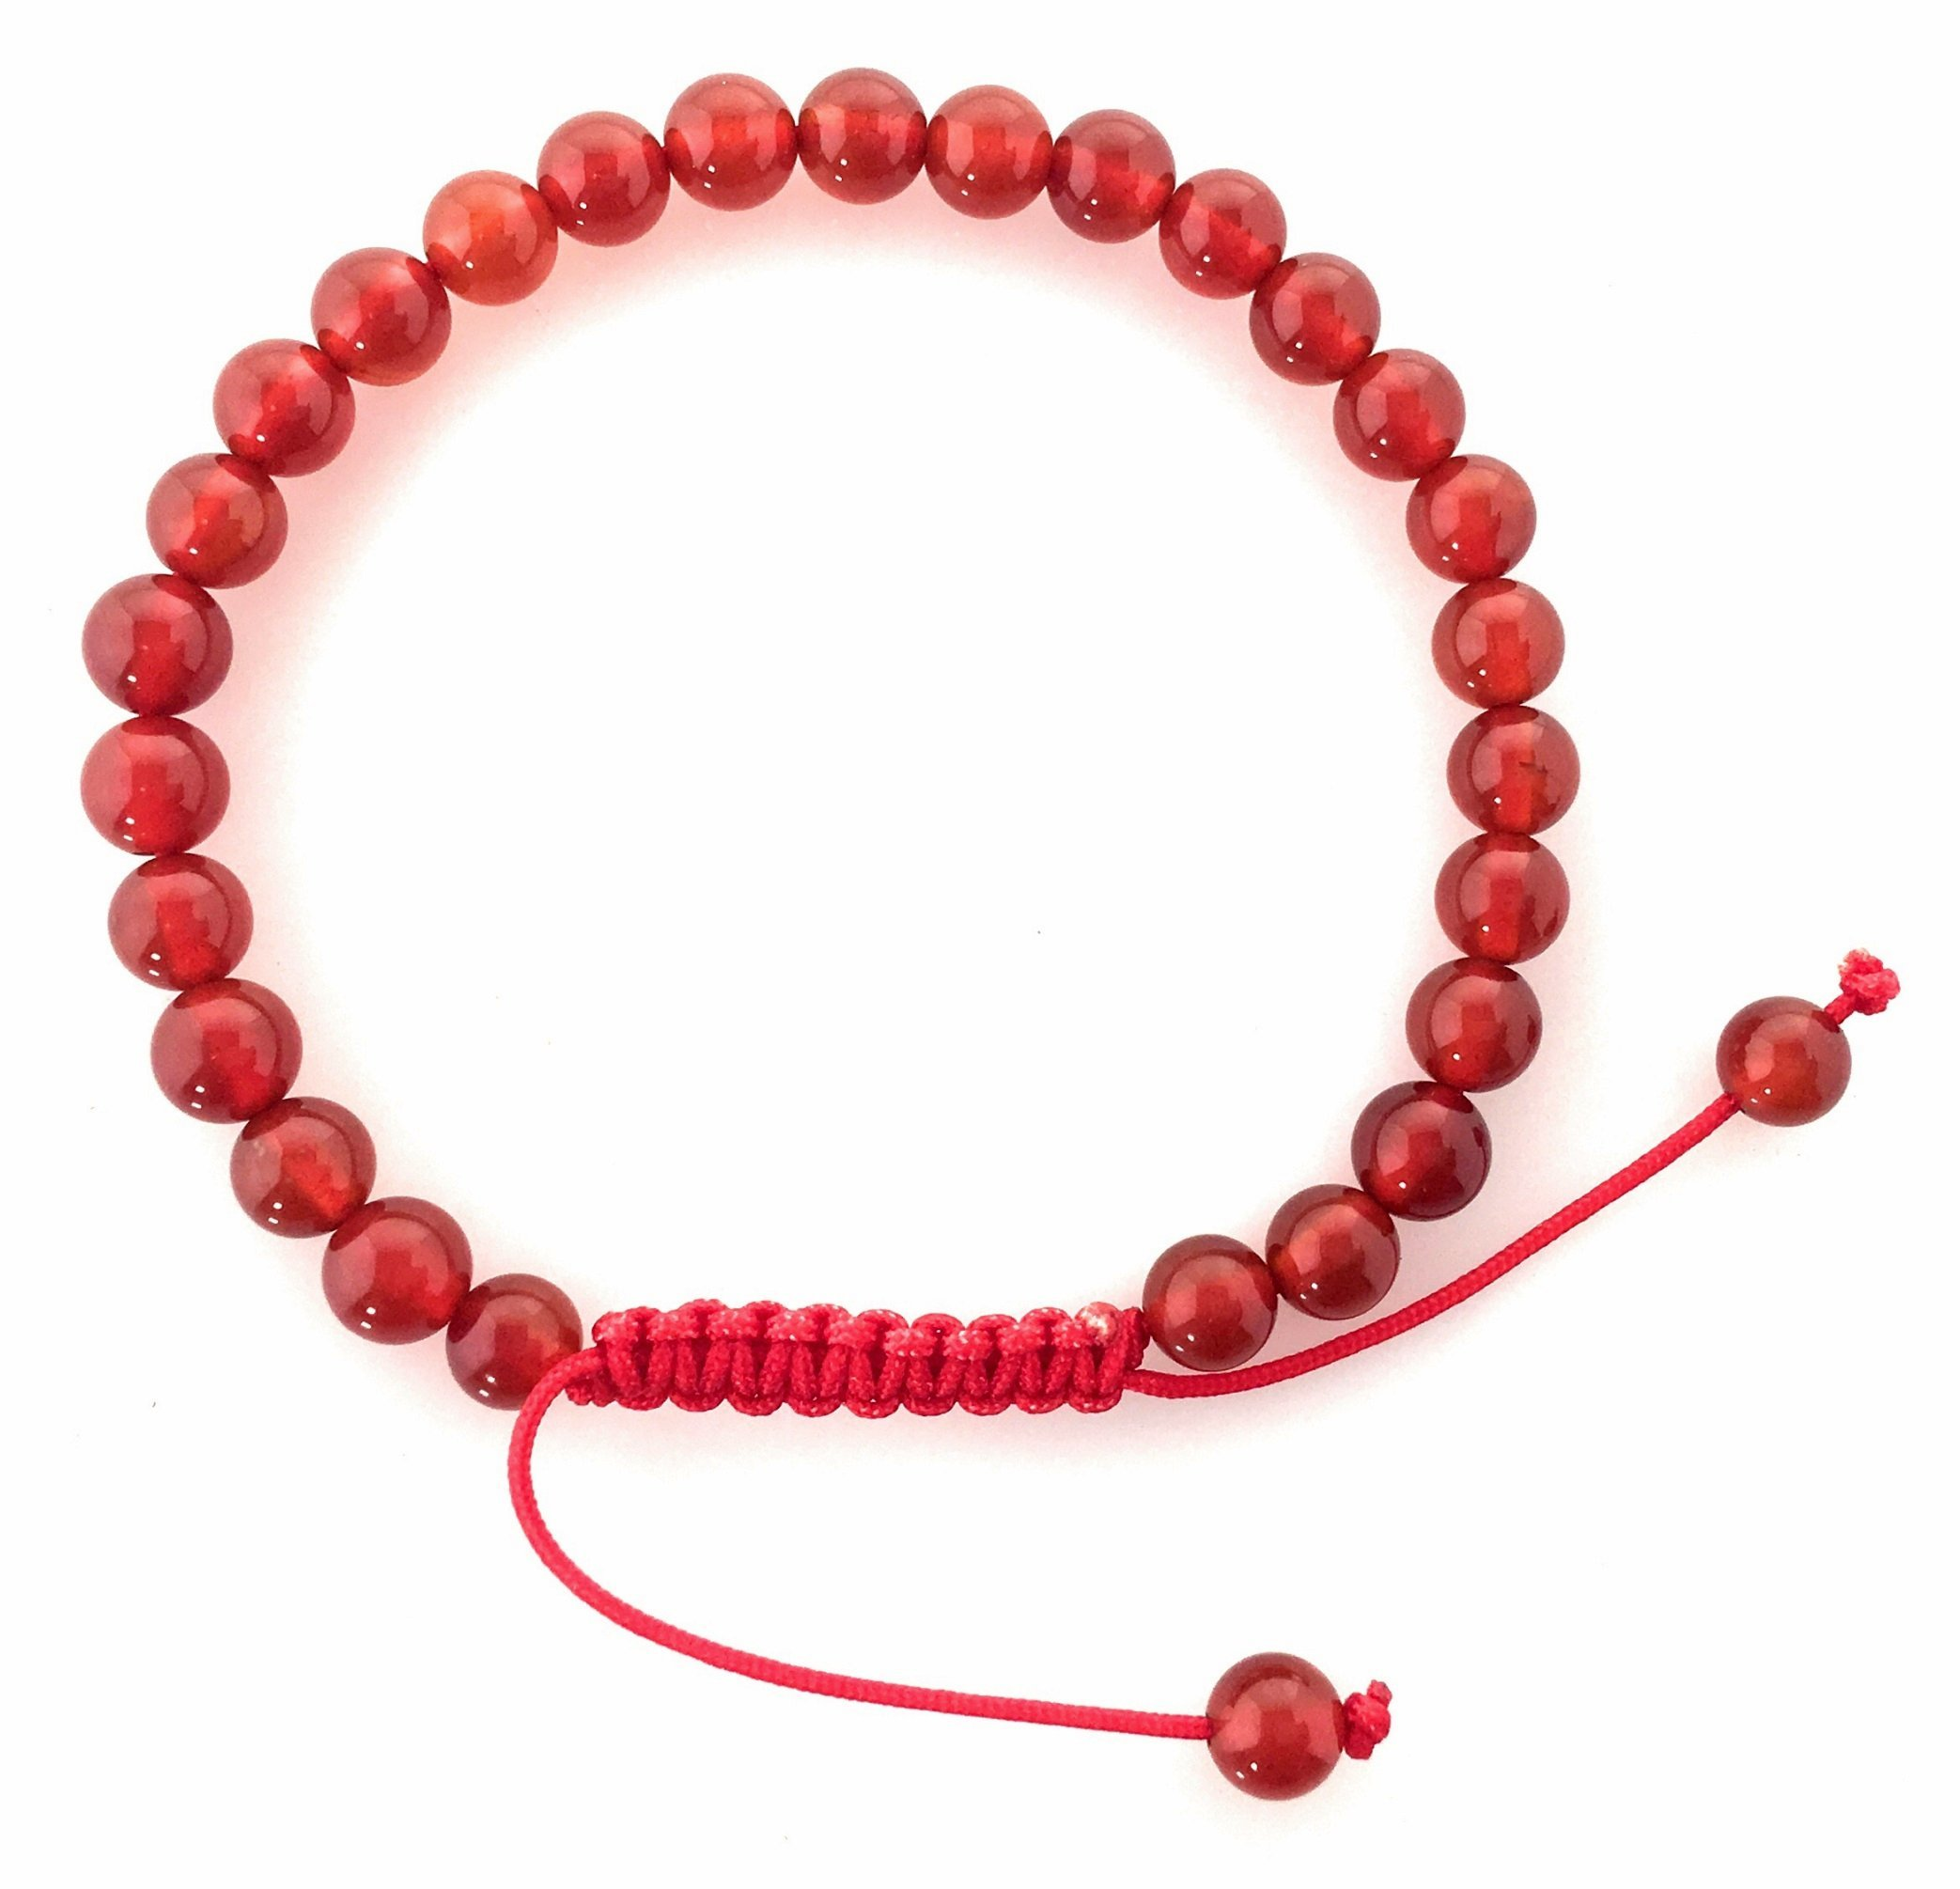 Hands Of Tibet Small Carnelian Wrist Mala/Bracelet for Meditation 6mm